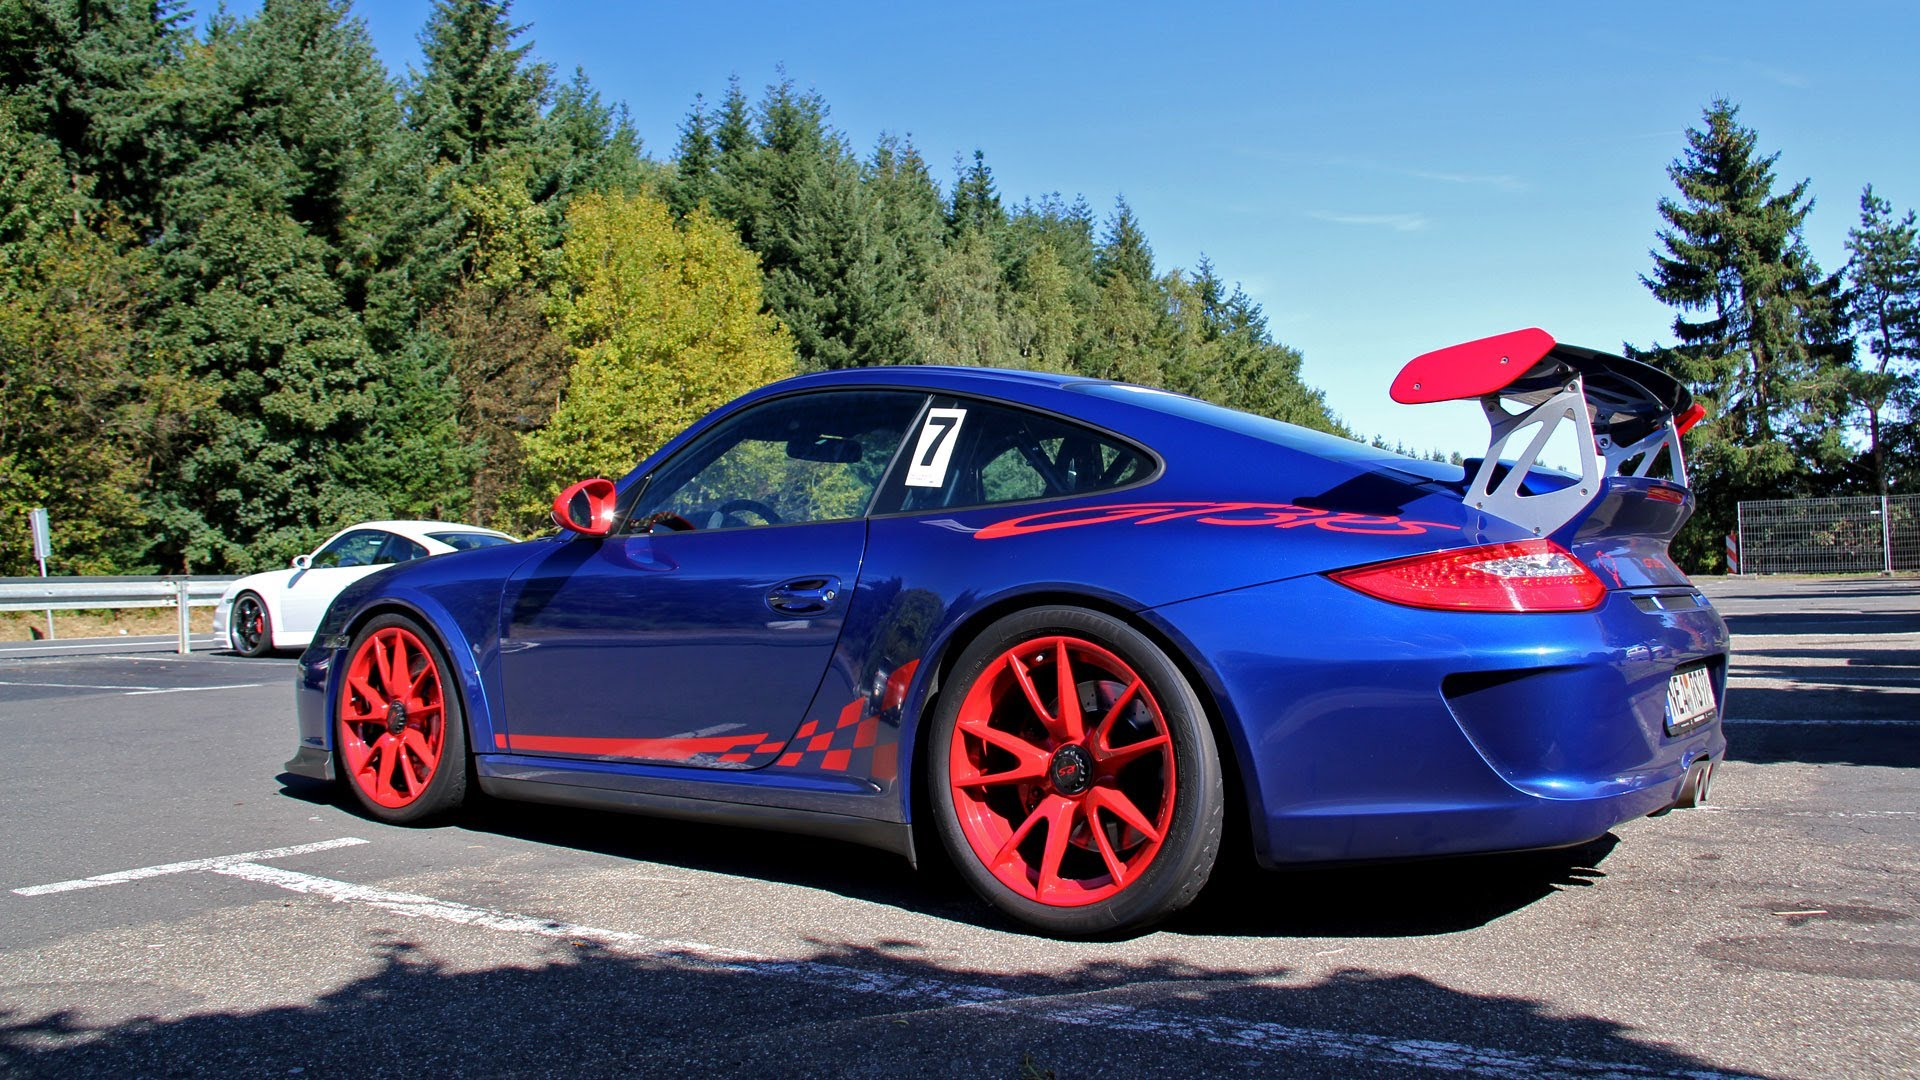 Blue/Red Porsche 997.2 GT3 RS at the Nurburgring!